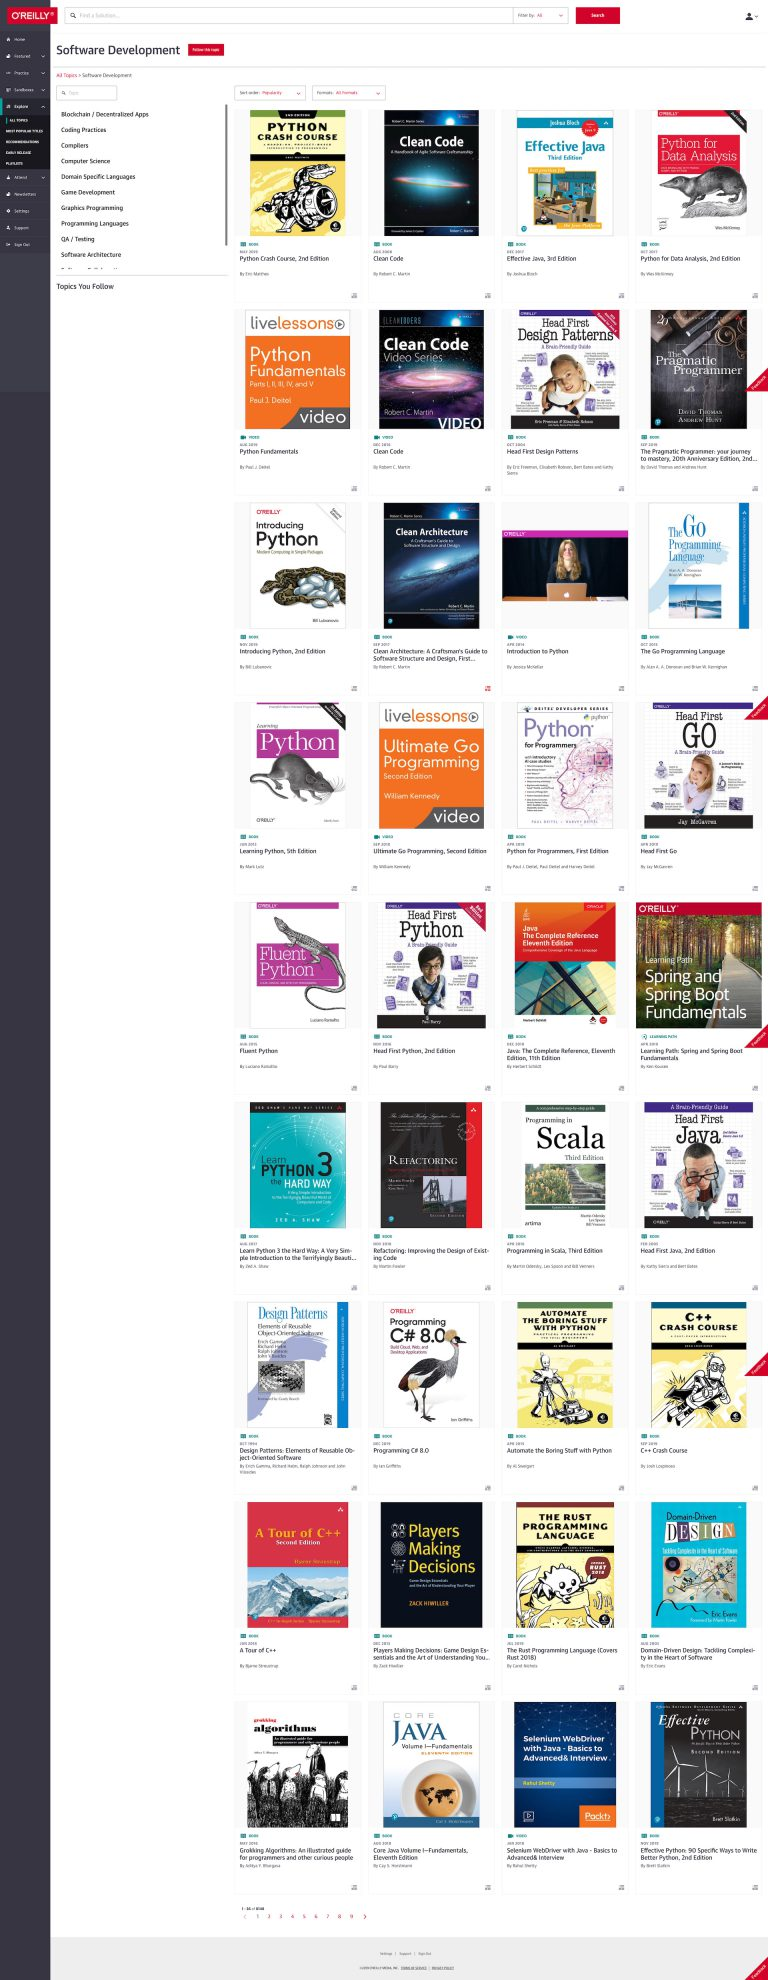 oreilly online learning books software dev image scaled